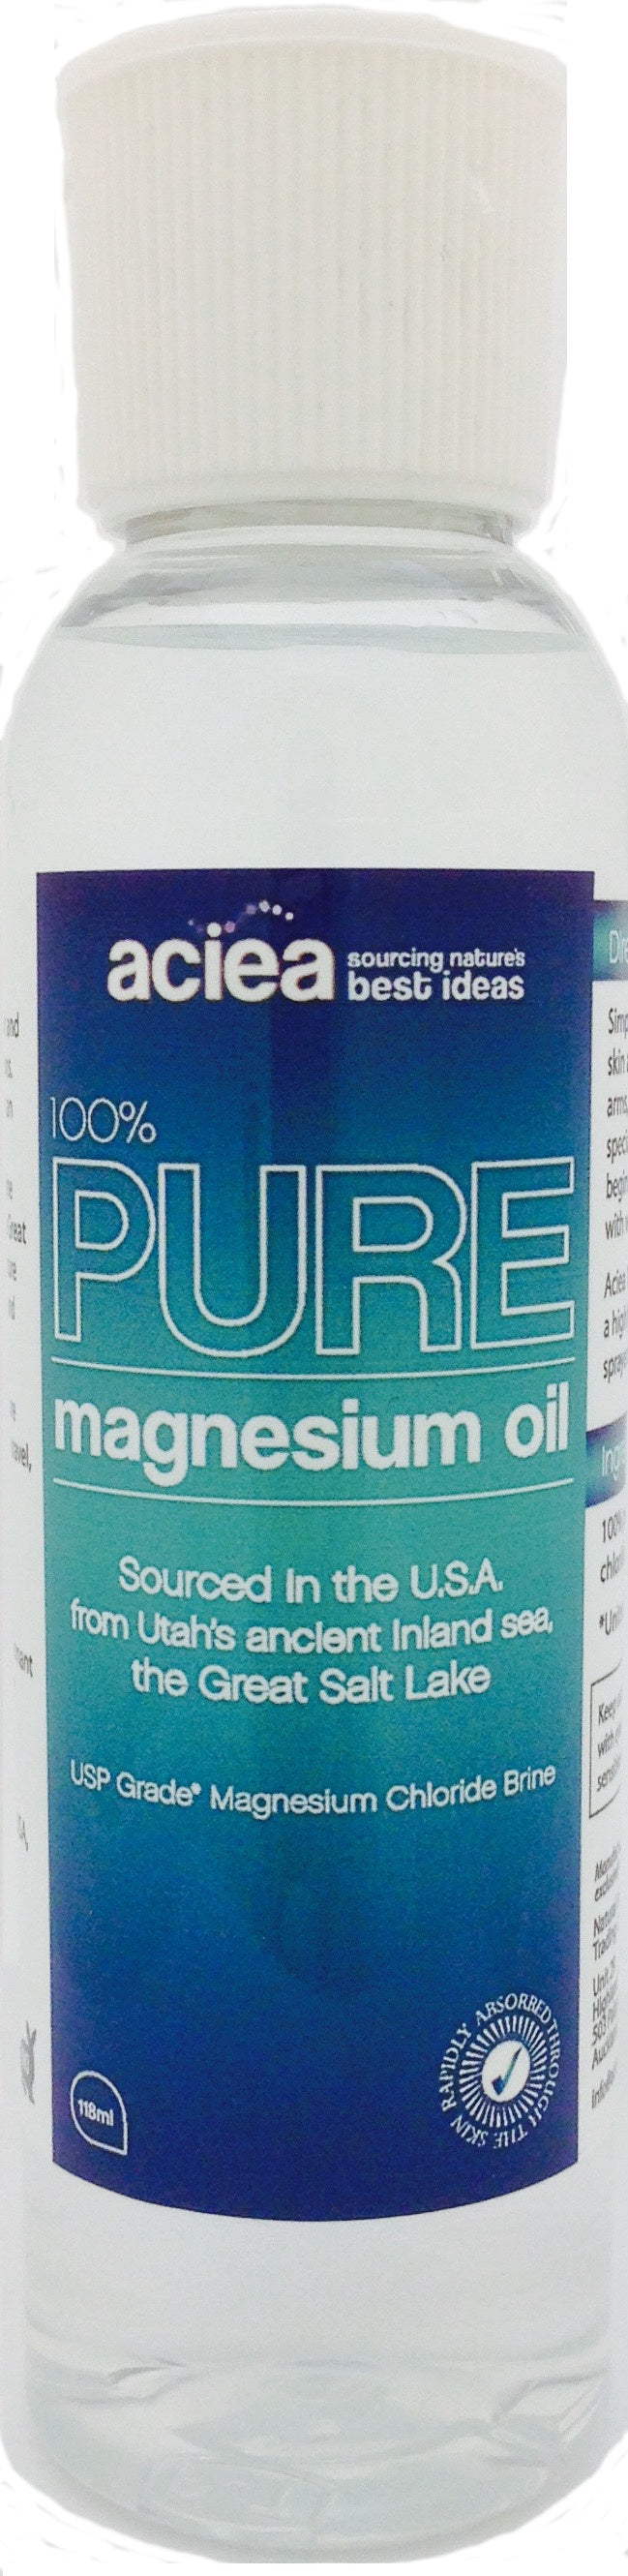 NHT 100% Pure Magnesium Oil